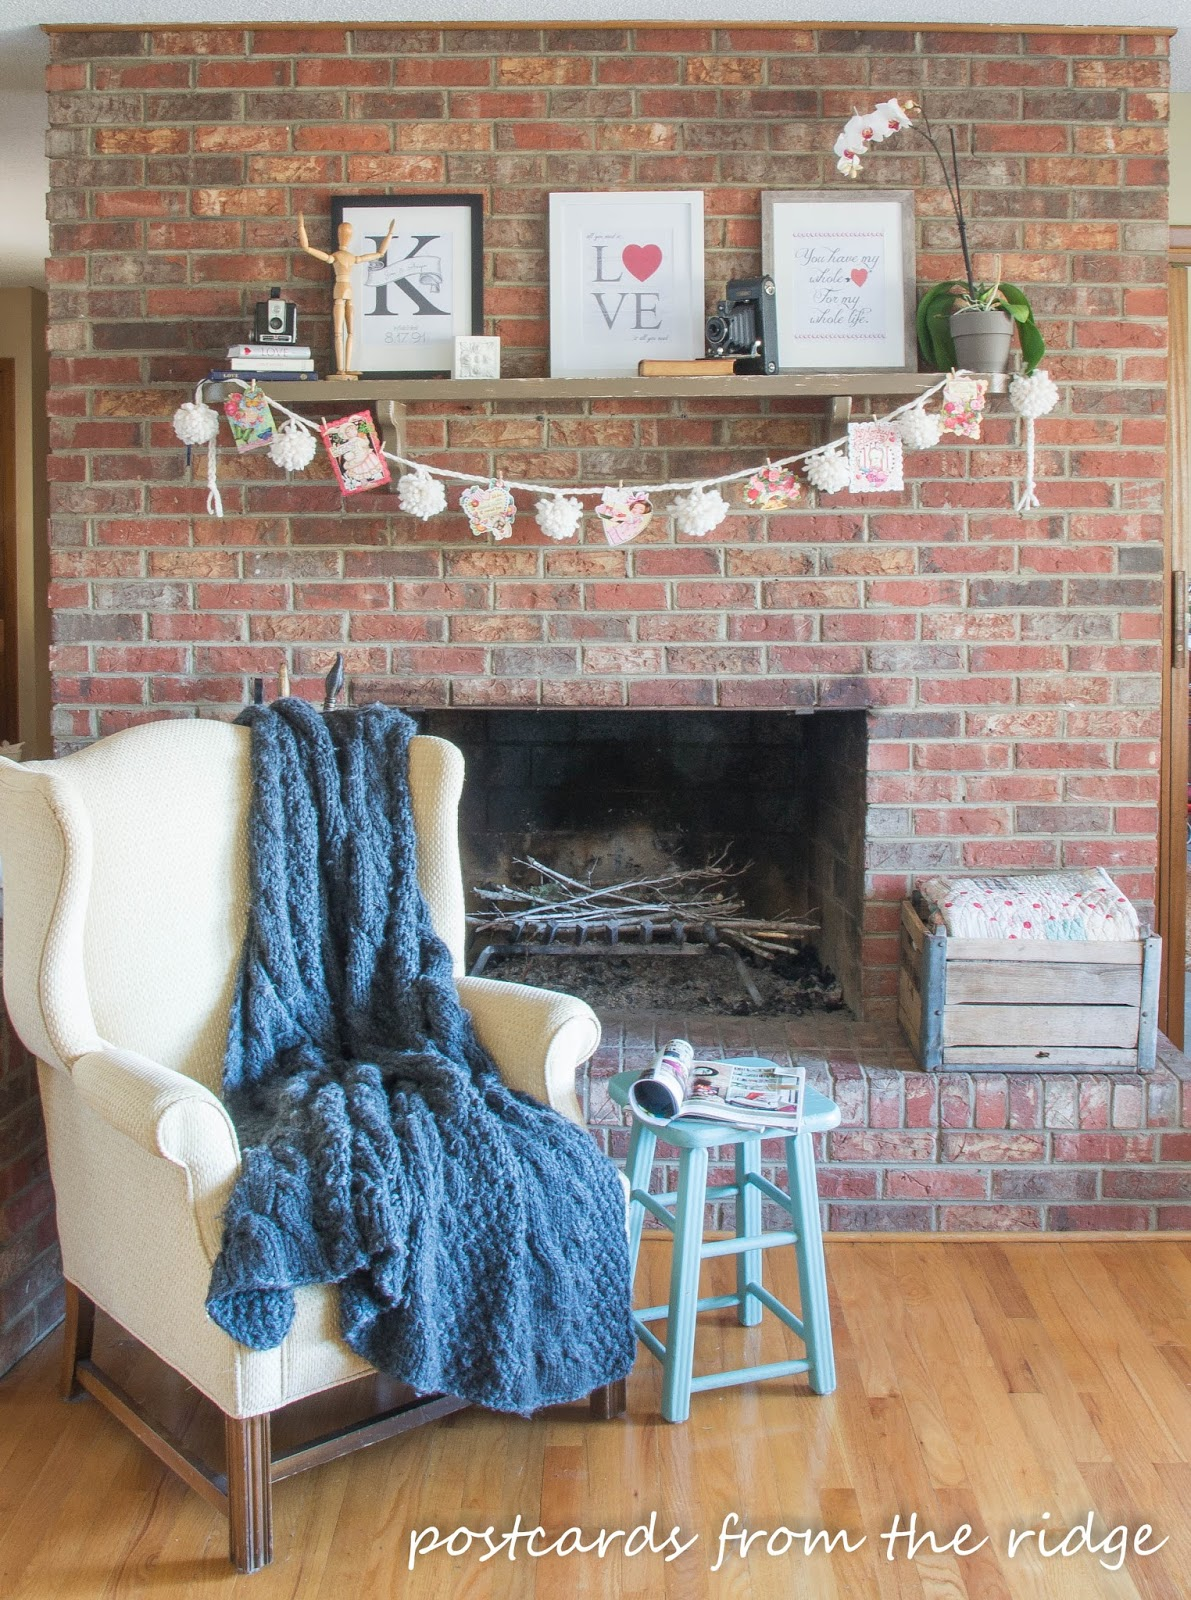 Valentine's mantel with free printable artwork. Postcards from the Ridge.